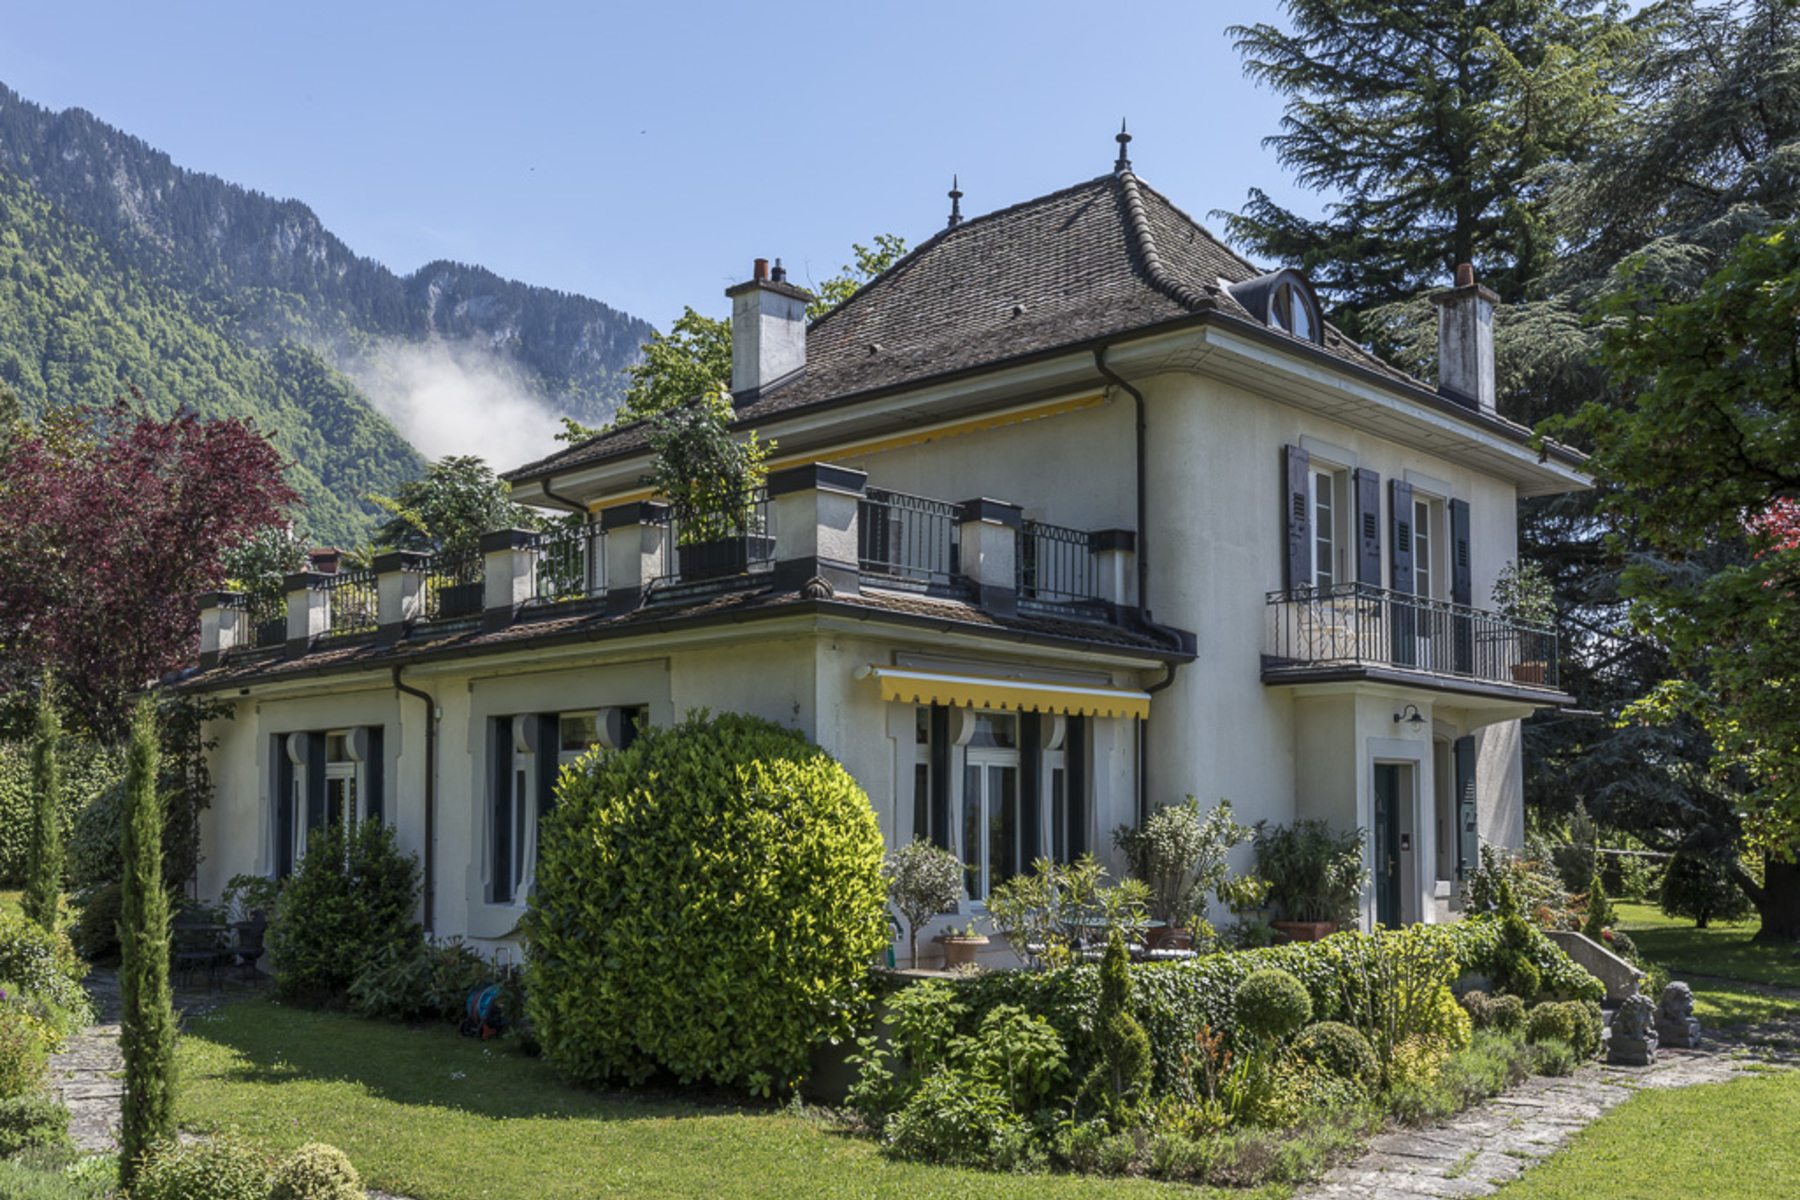 Maison unifamiliale pour l à vendre à Sumptuous mansion with undeniable charm, just a stone's throw from lake Villeneuve, Villeneuve Vd, Vaud, 1844 Suisse